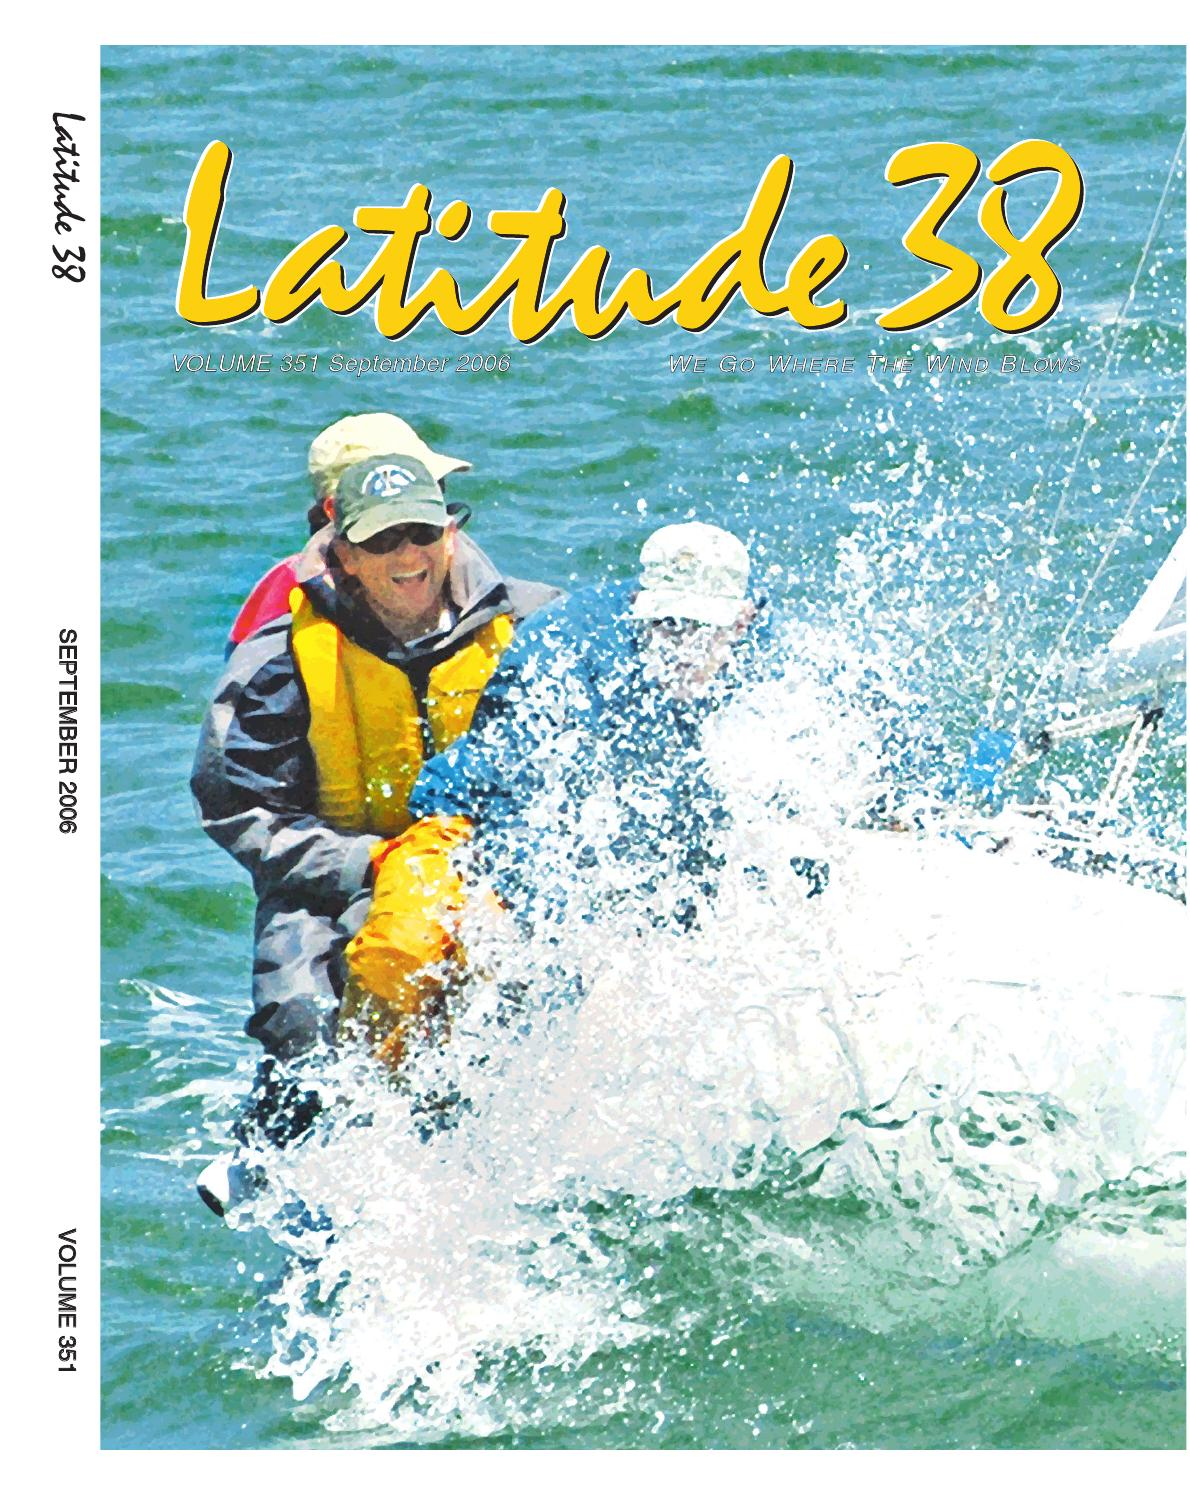 Latitude 38 September 2006 by Latitude 38 Media, LLC - issuu